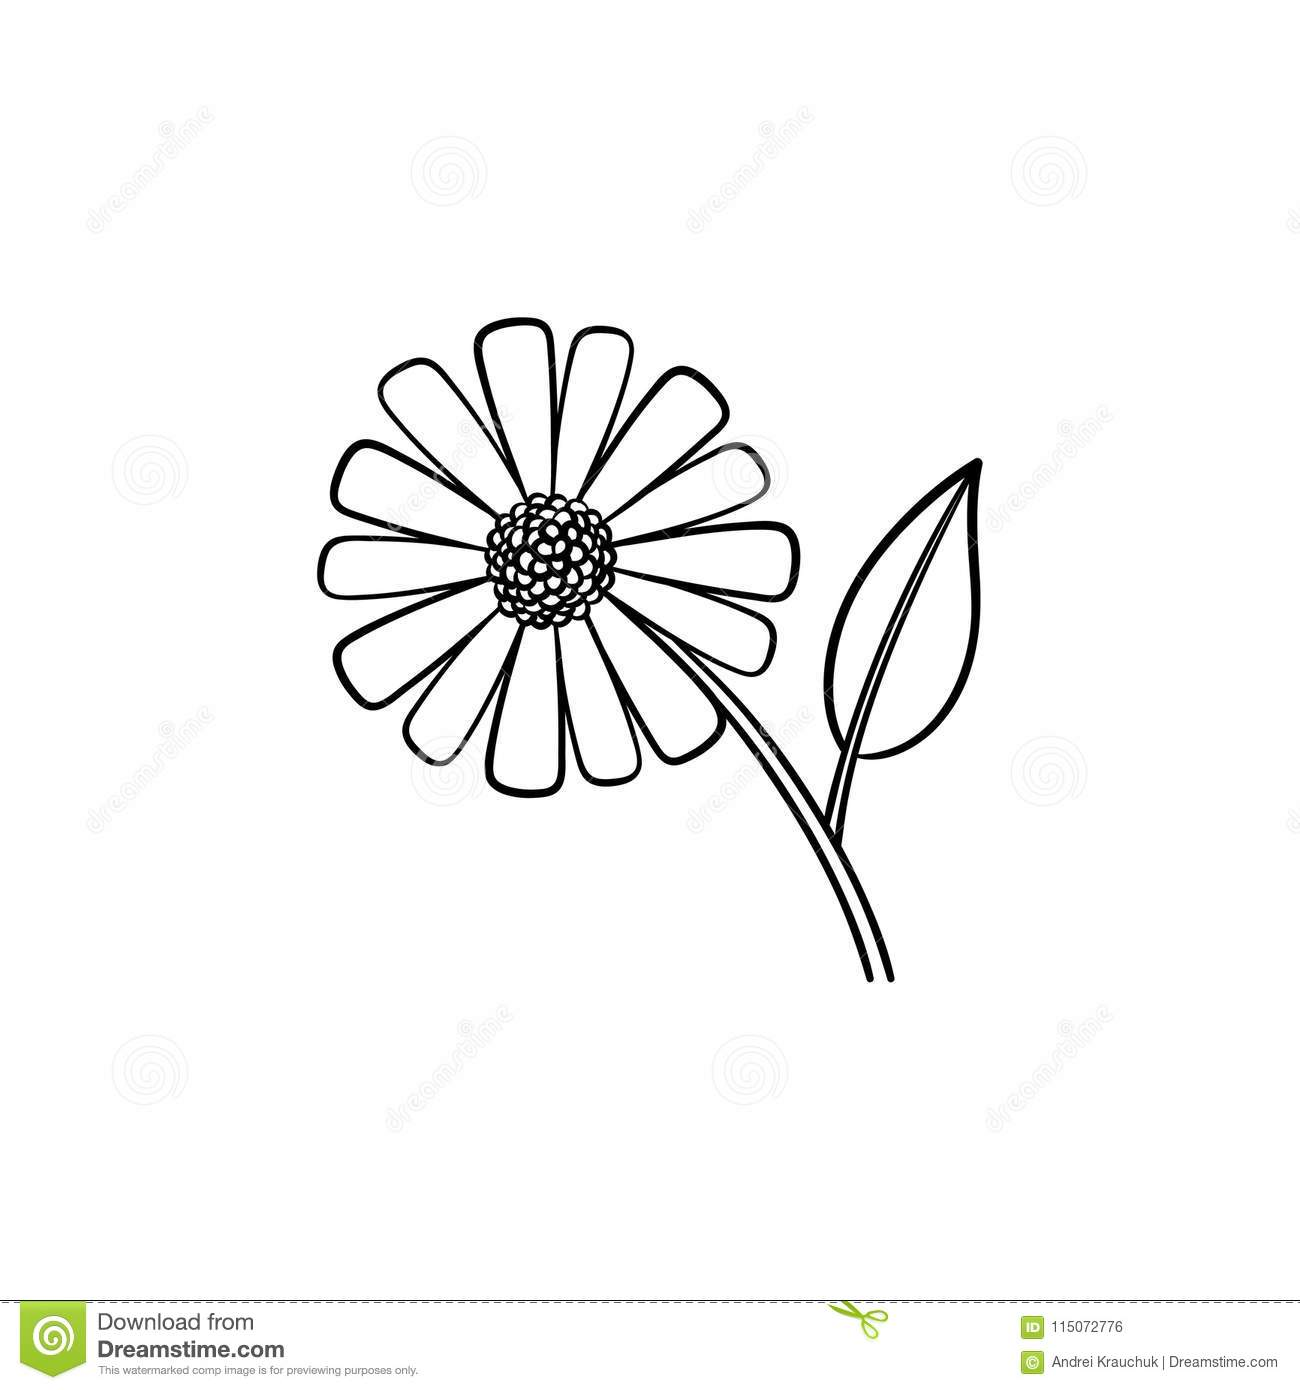 Daisy Flower Hand Drawn Sketch Icon Stock Vector Illustration Of